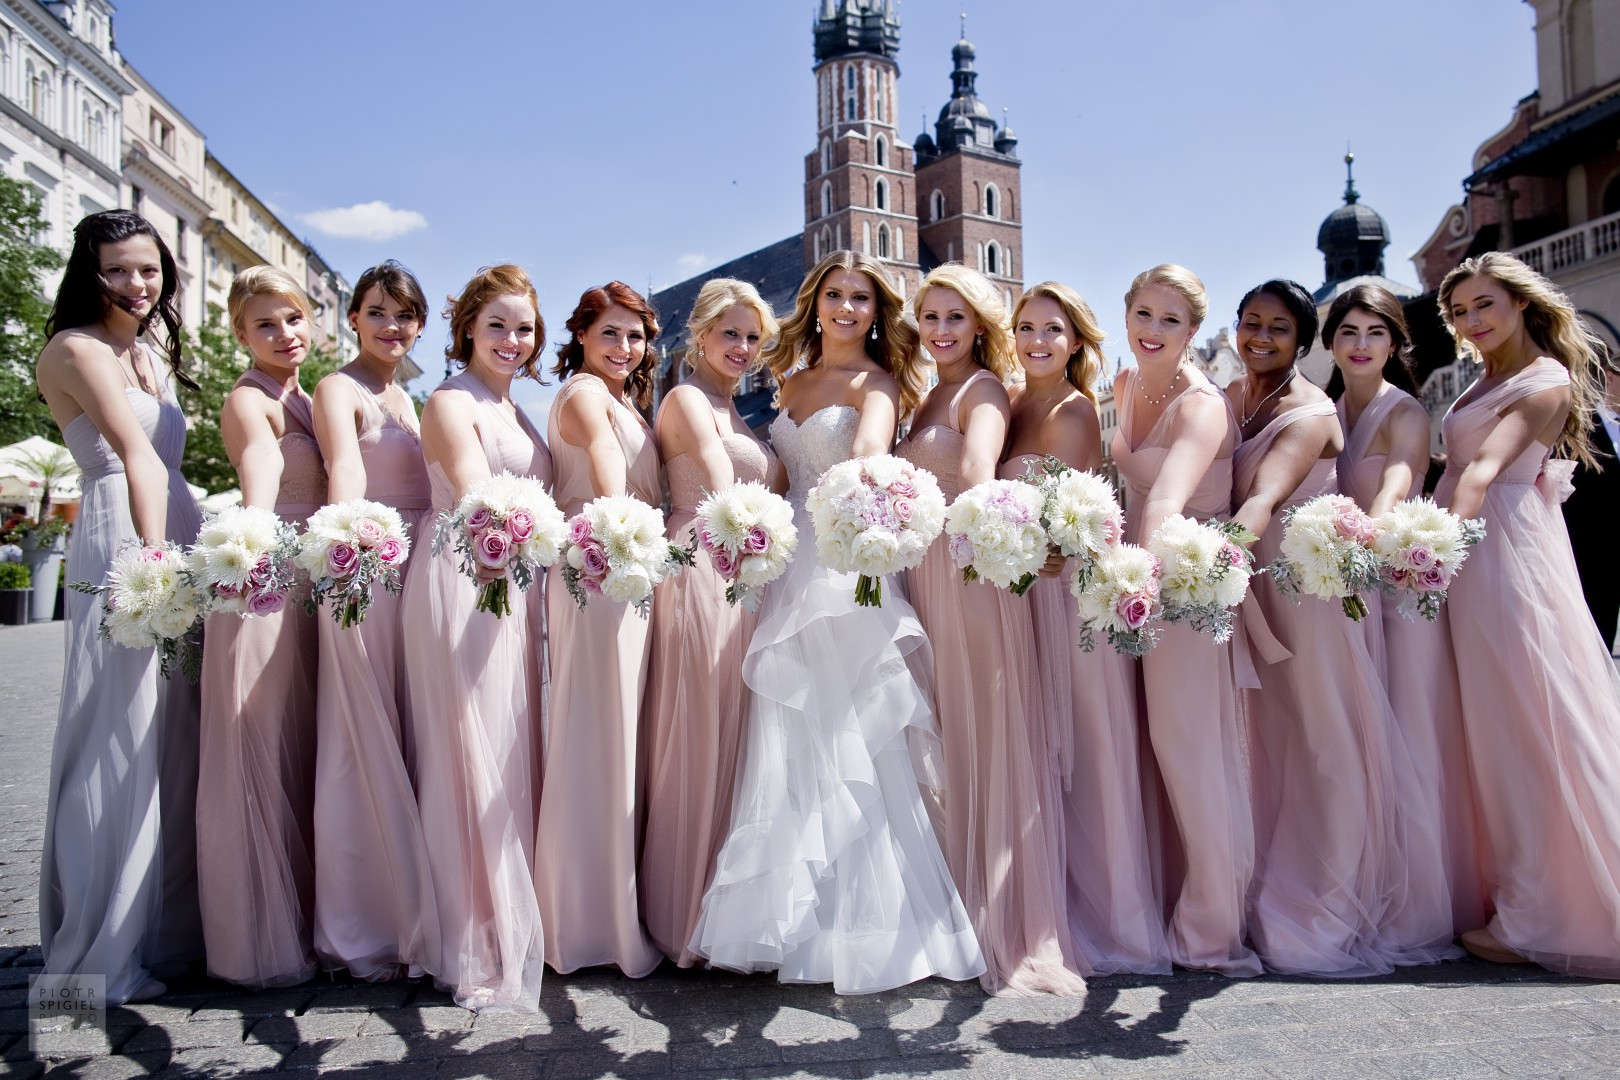 Wedding ceremony and reception  in Poland